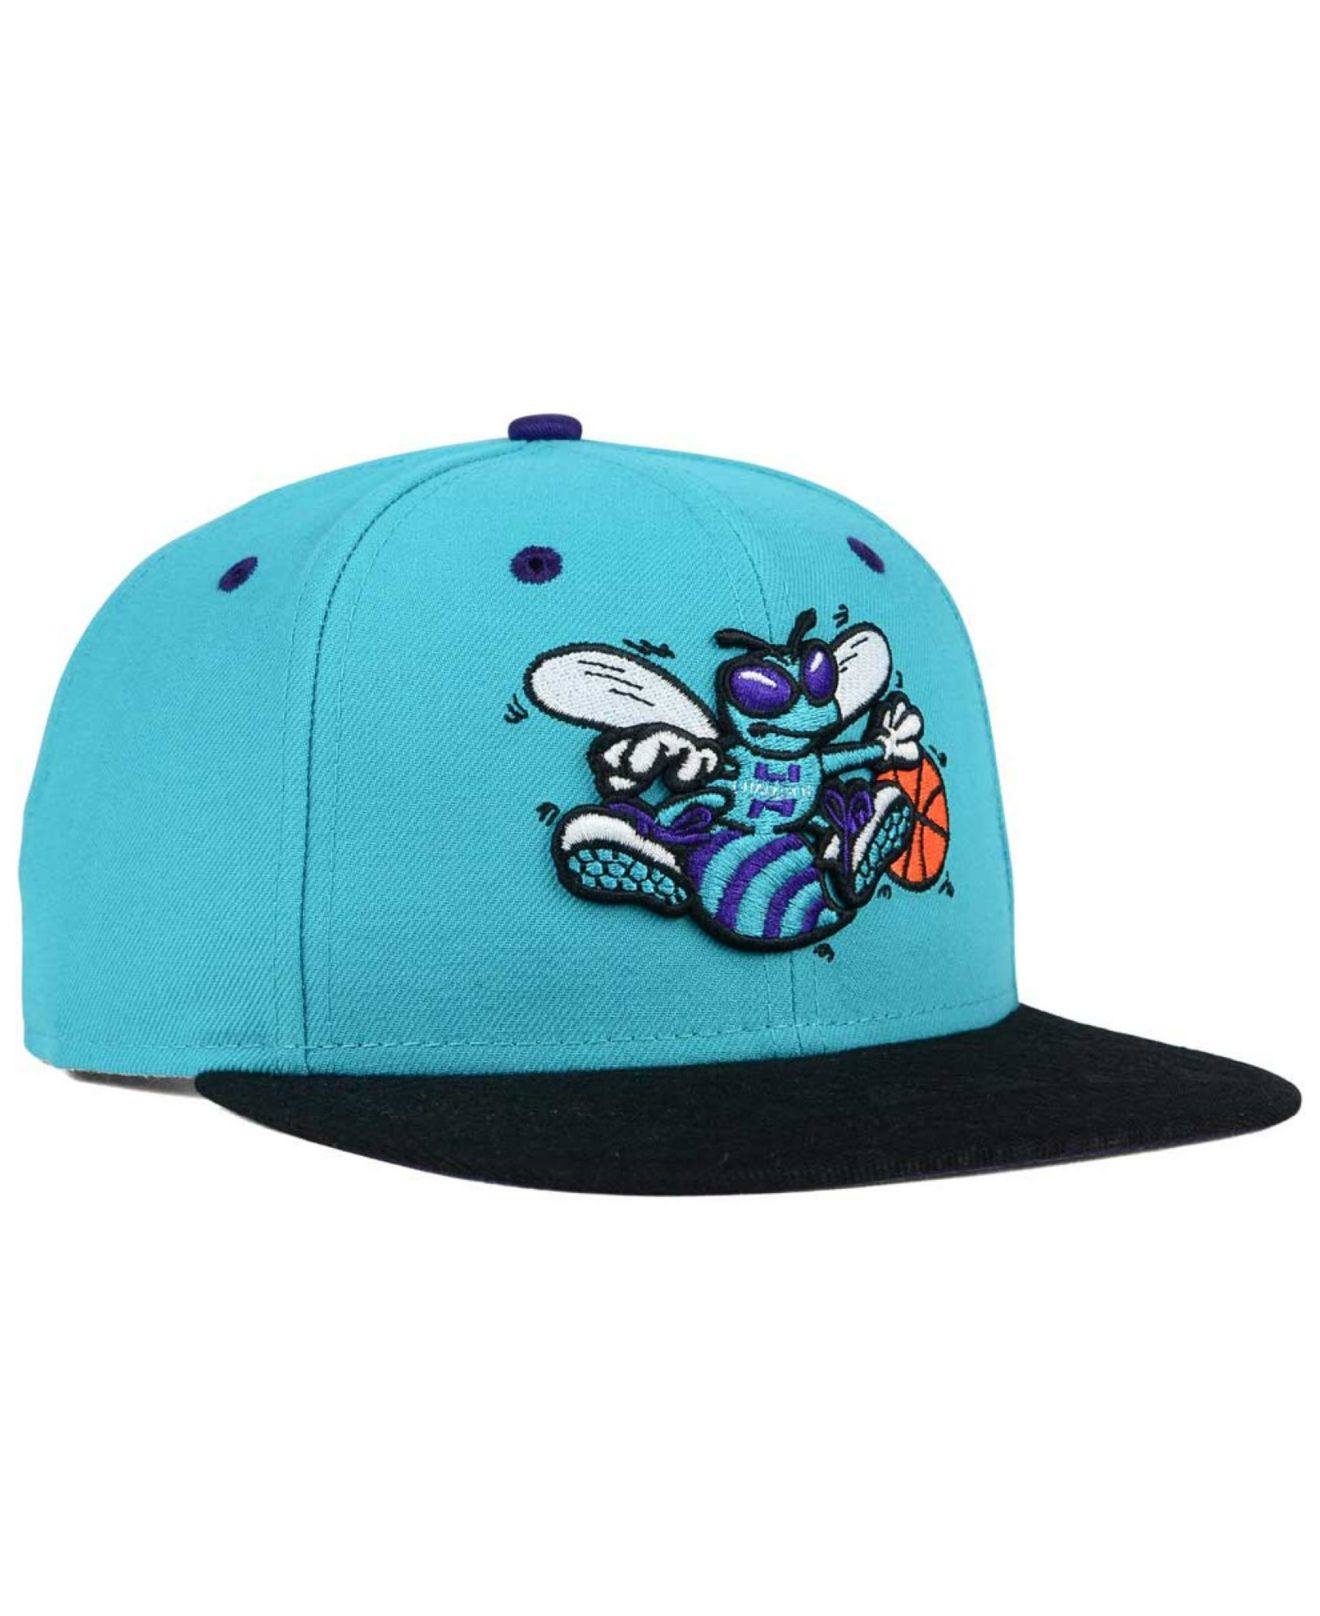 53e29504c76 Lyst - KTZ Charlotte Hornets Tone 9fifty Snapback Cap in Blue for Men